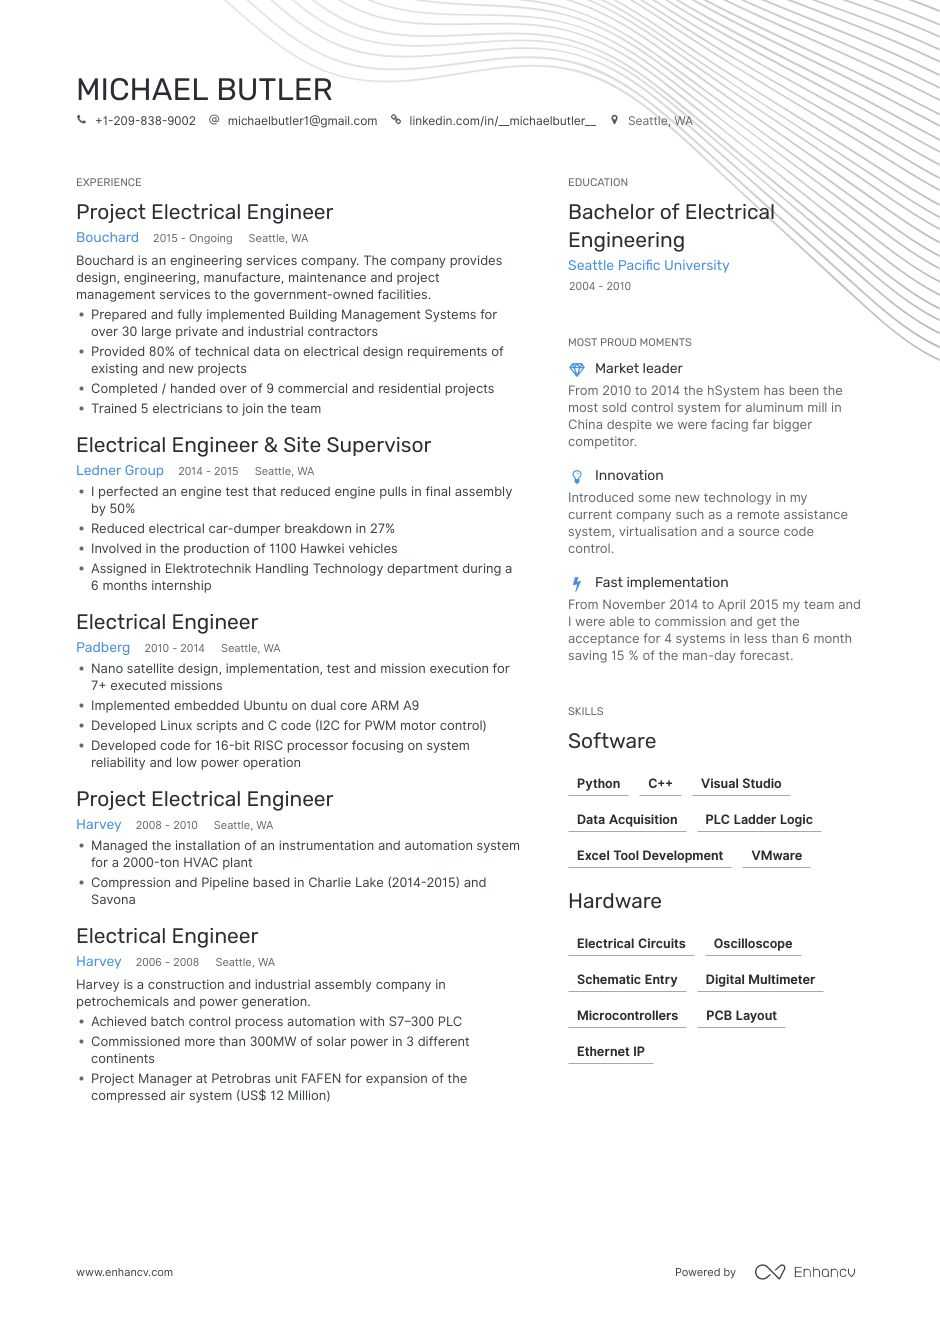 electrical engineer resume examples pro tips featured enhancv sample engineering campaign Resume Electrical Engineer Resume Sample